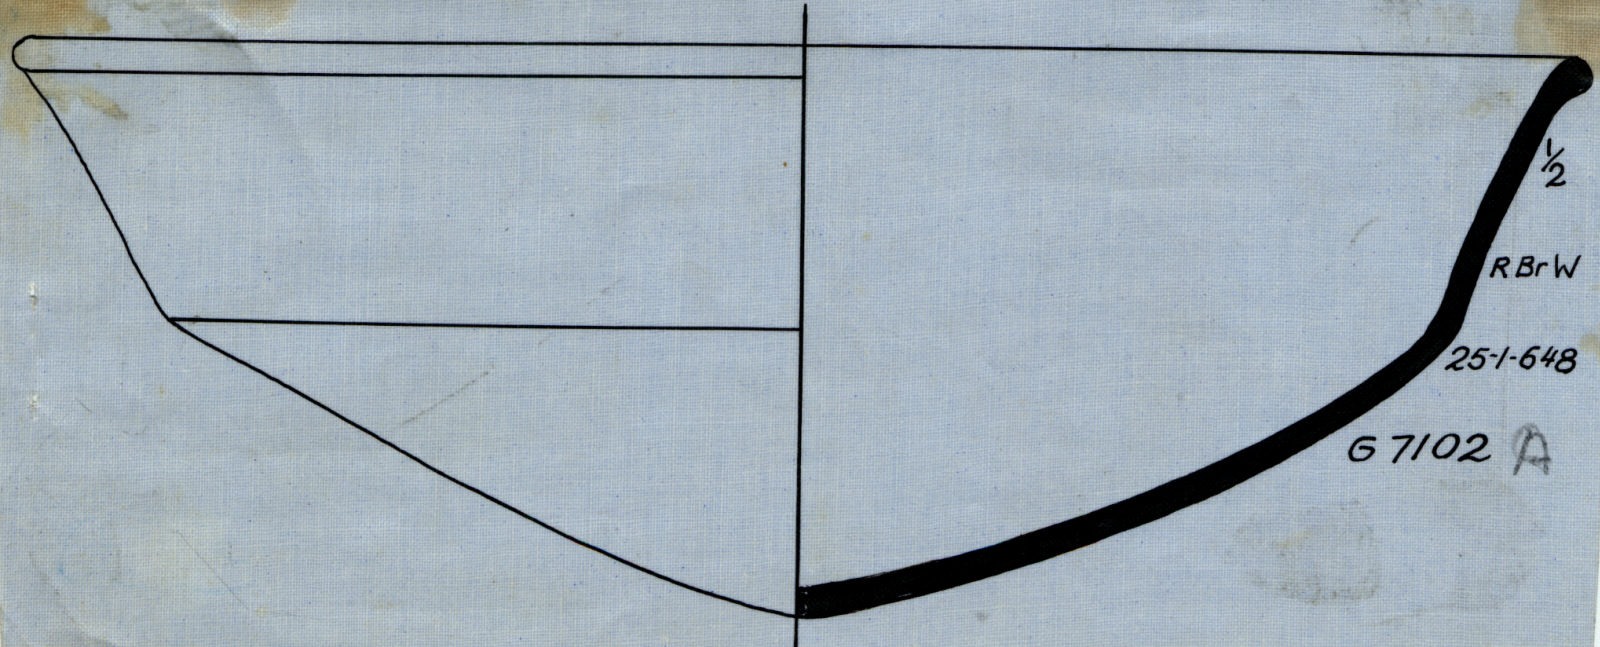 Drawings: G 7102, Shaft C: pottery, carinated bowl